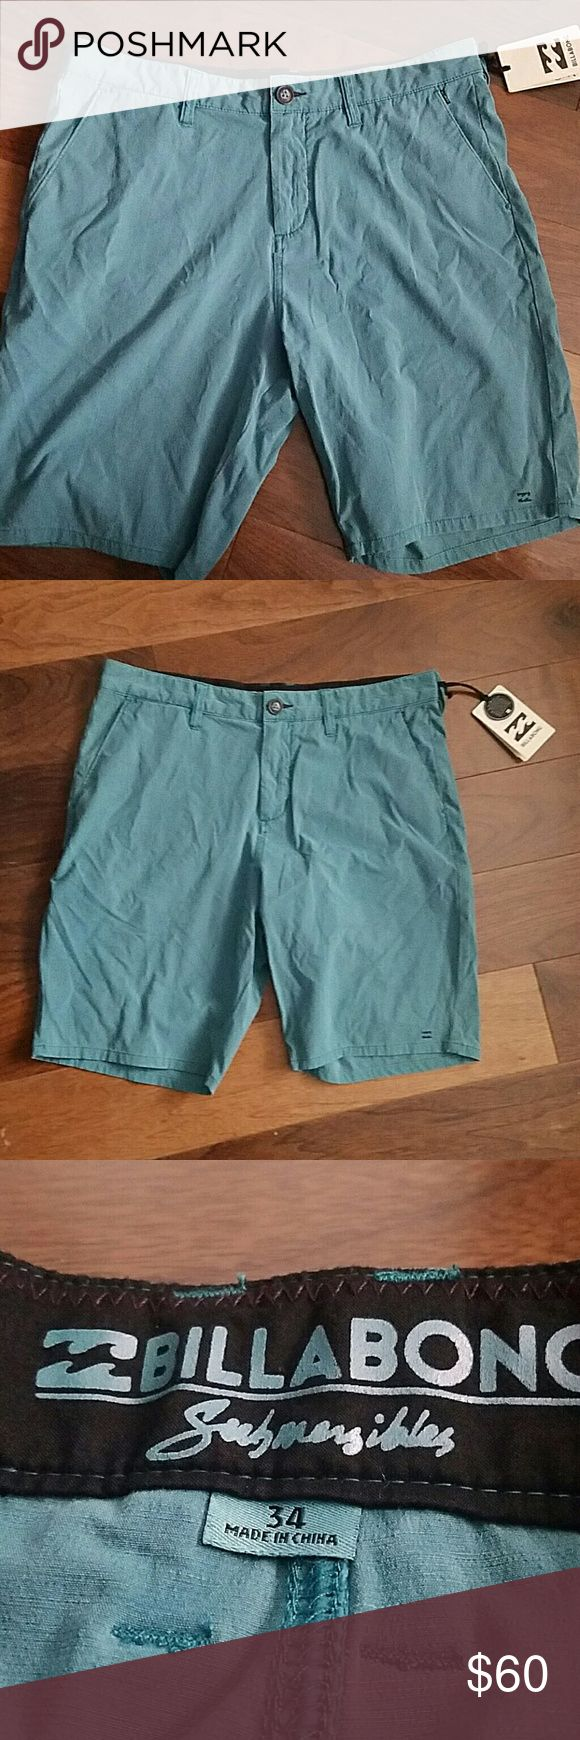 """SALE (was $50) Billabong Mens Boardshorts NWT! Brand new with tags. Submersible casual shorts - quick dry boardshorts. Size 34. Color: """"ocean"""" blue. Billabong Swim Hybrids"""